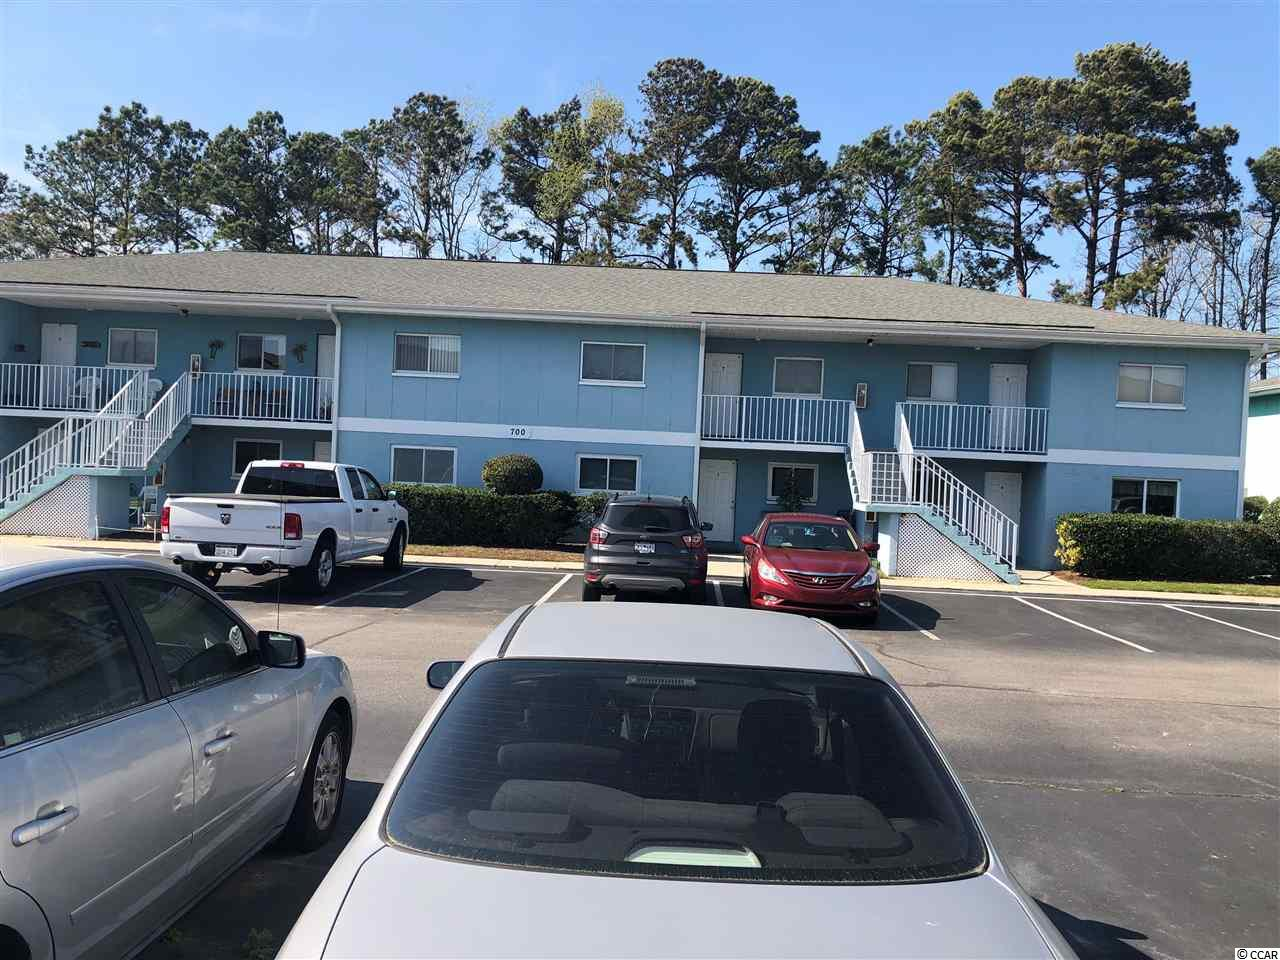 2 bedroom 2 bath condo in the highly desired neighborhood of Tradewinds II, centrally located near all the Grand Strand has to offer. Washer and dryer also convey. These units do not last long in this area!!